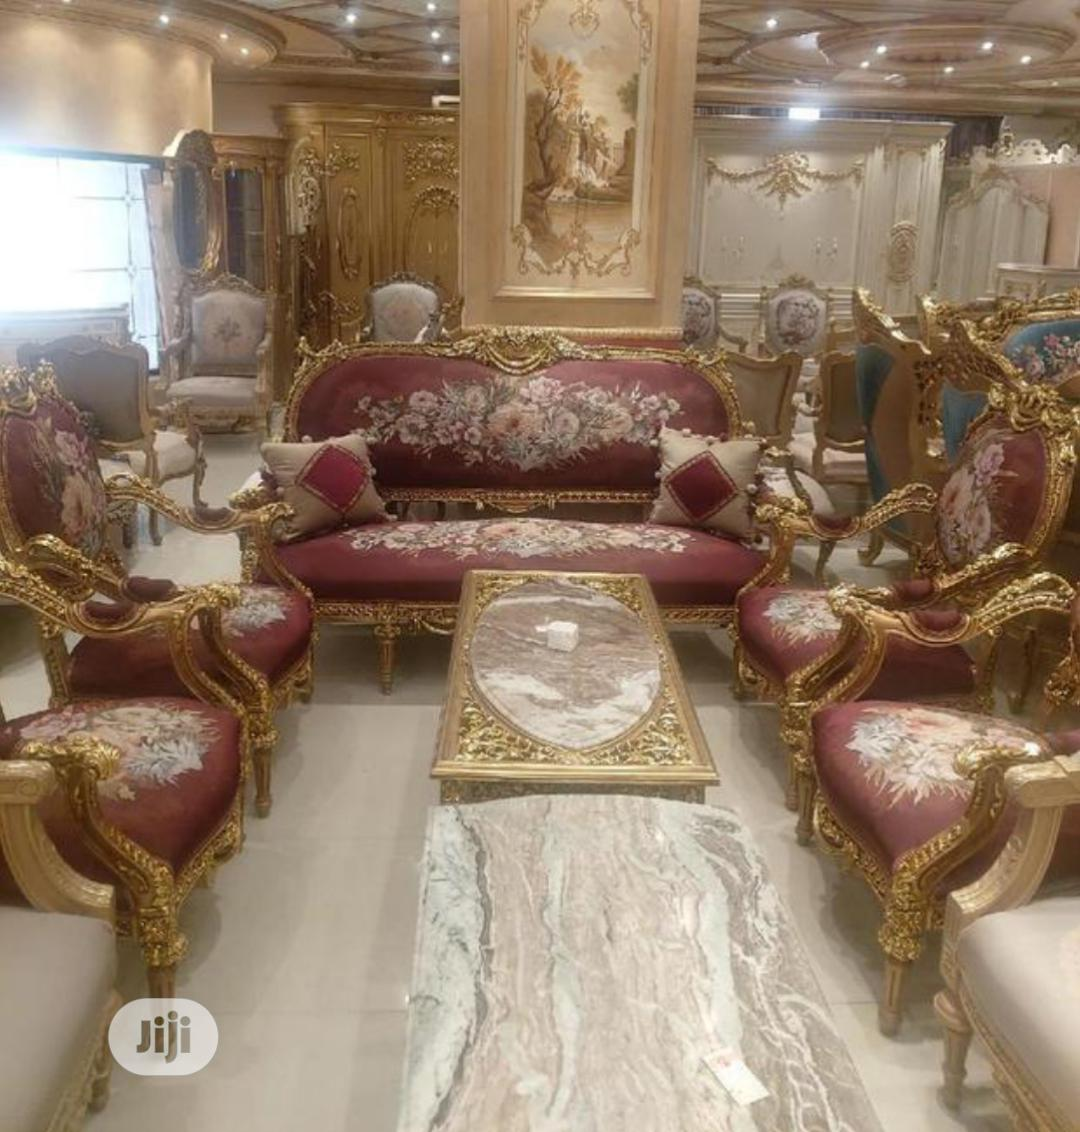 Archive: Italian Royal Chair for Sale